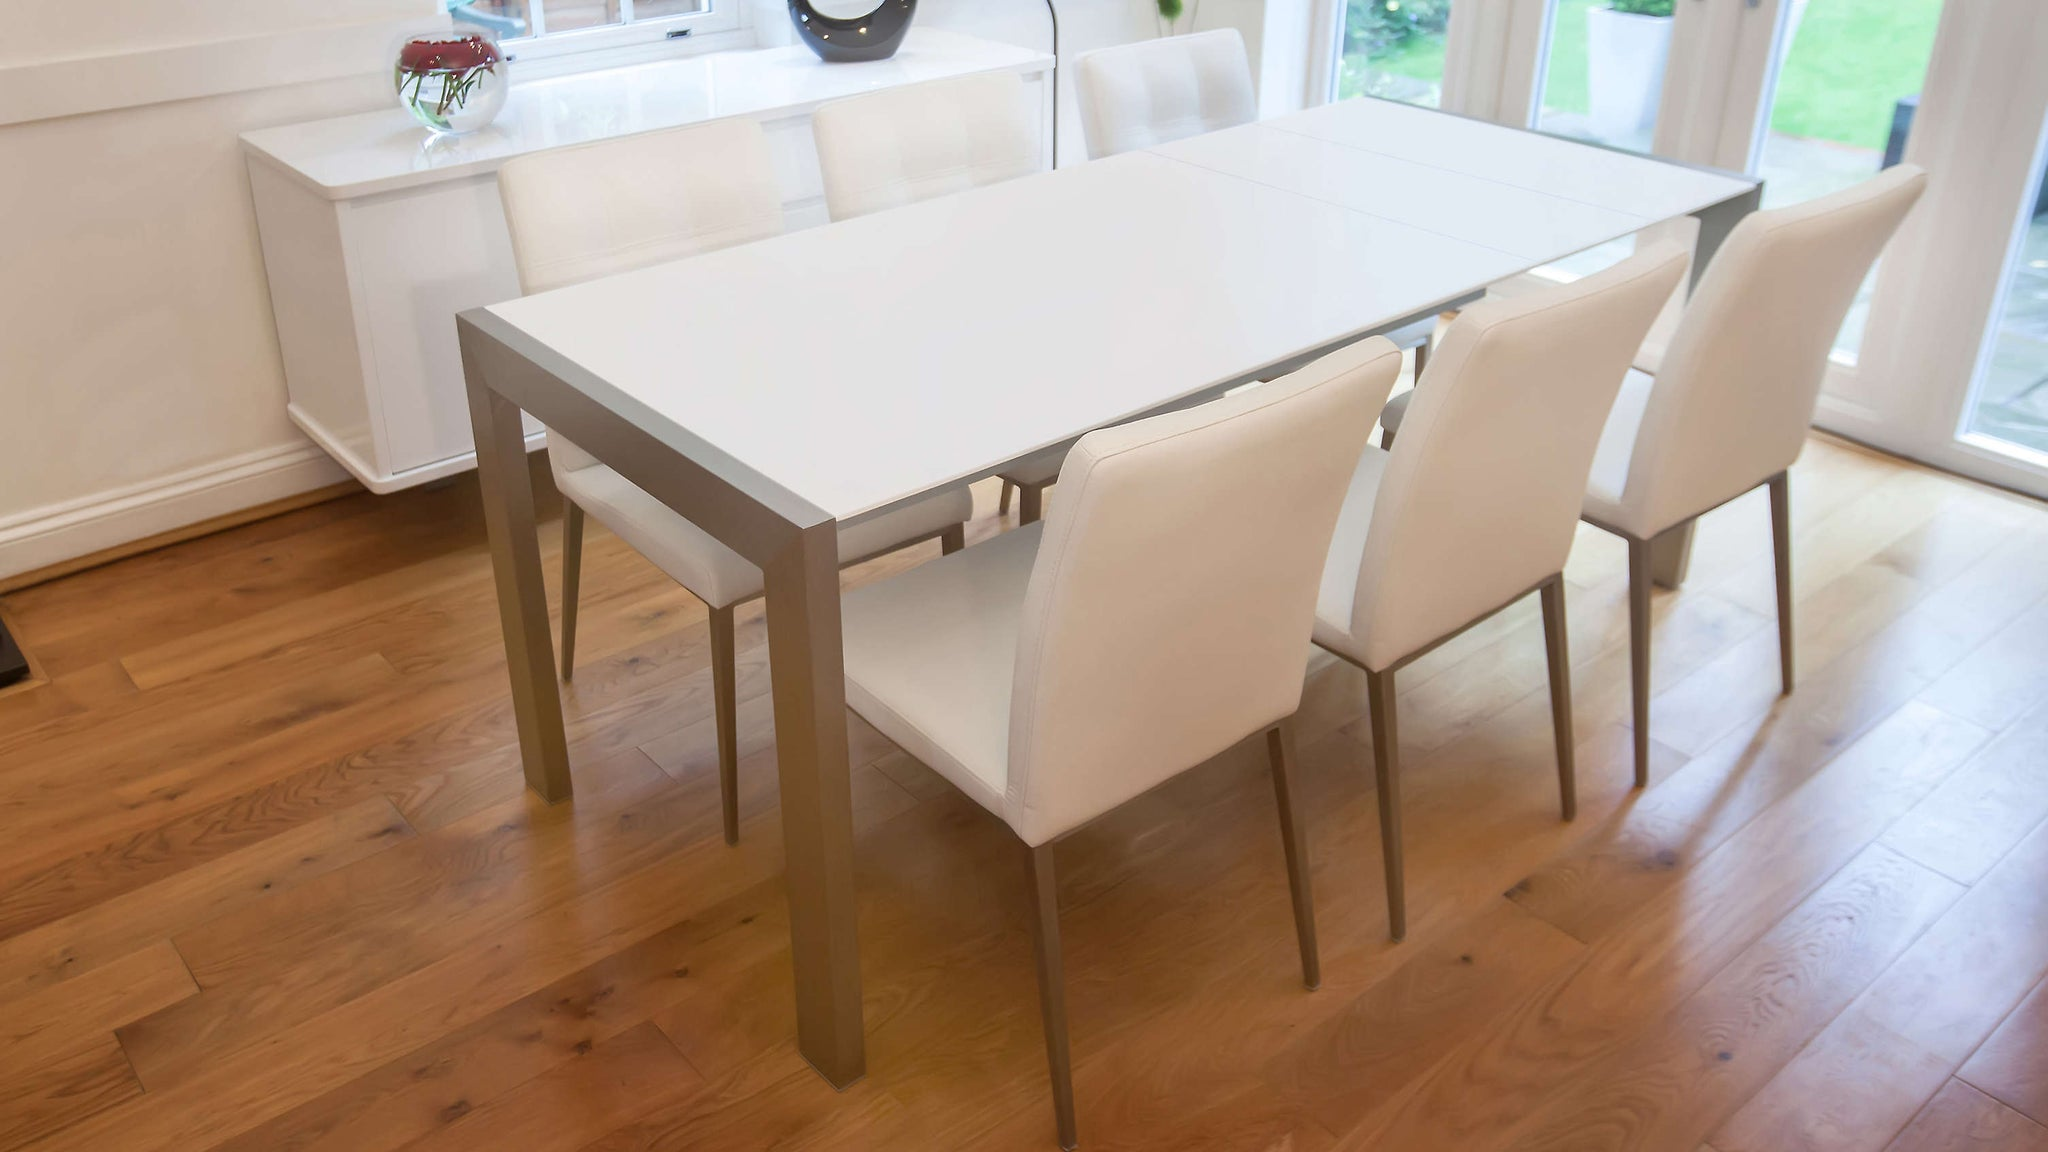 4-8 Seater Matt White Double Extending Dining Table